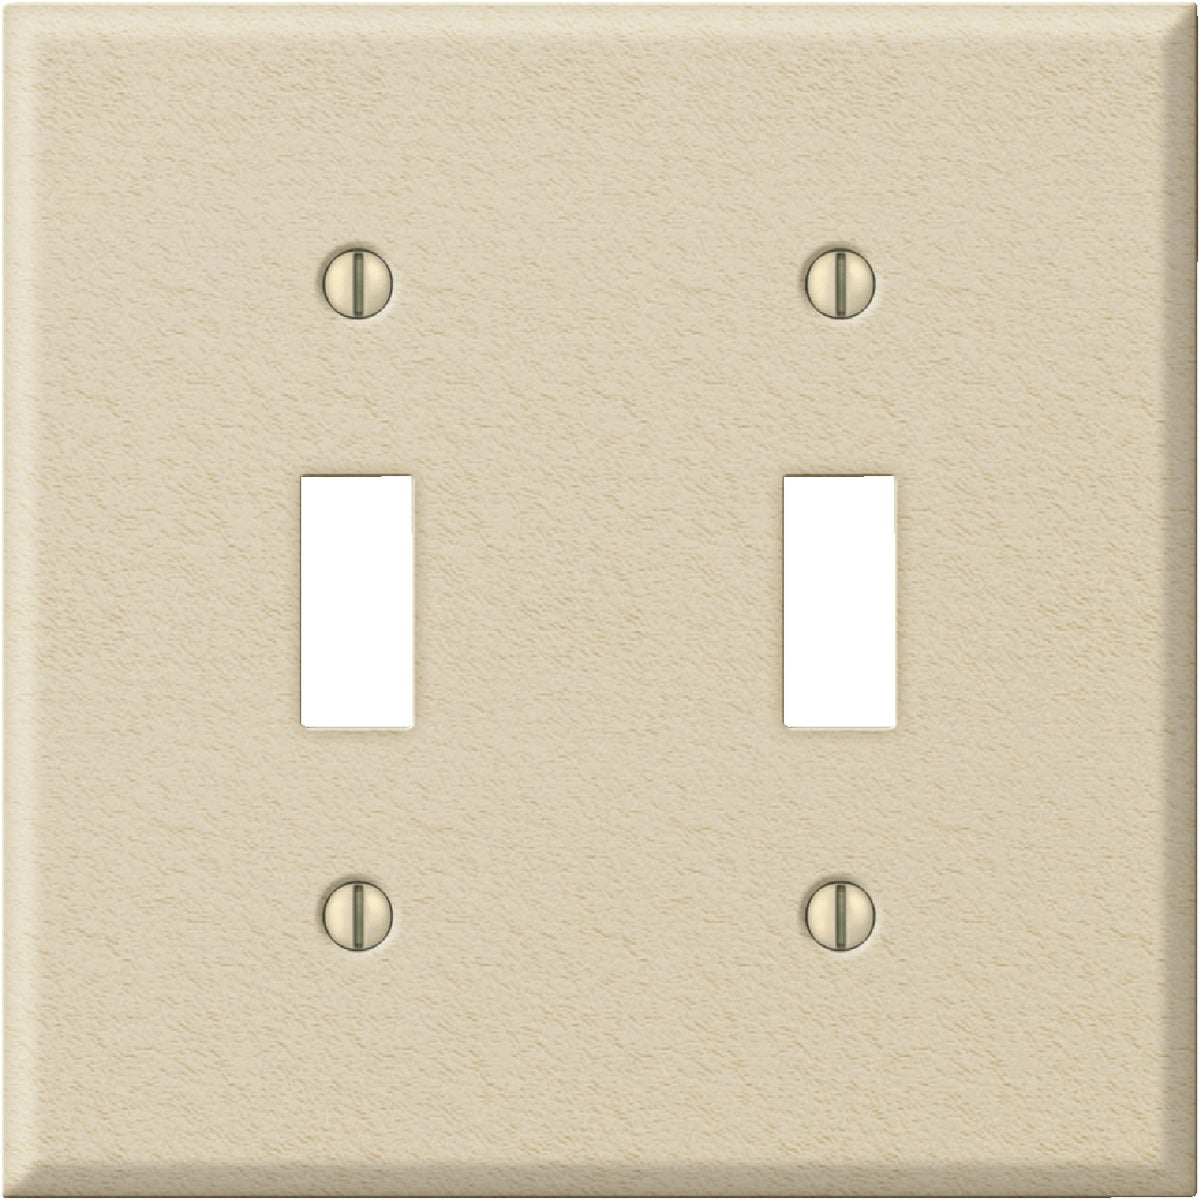 IV DBL SWITCH WALL PLATE